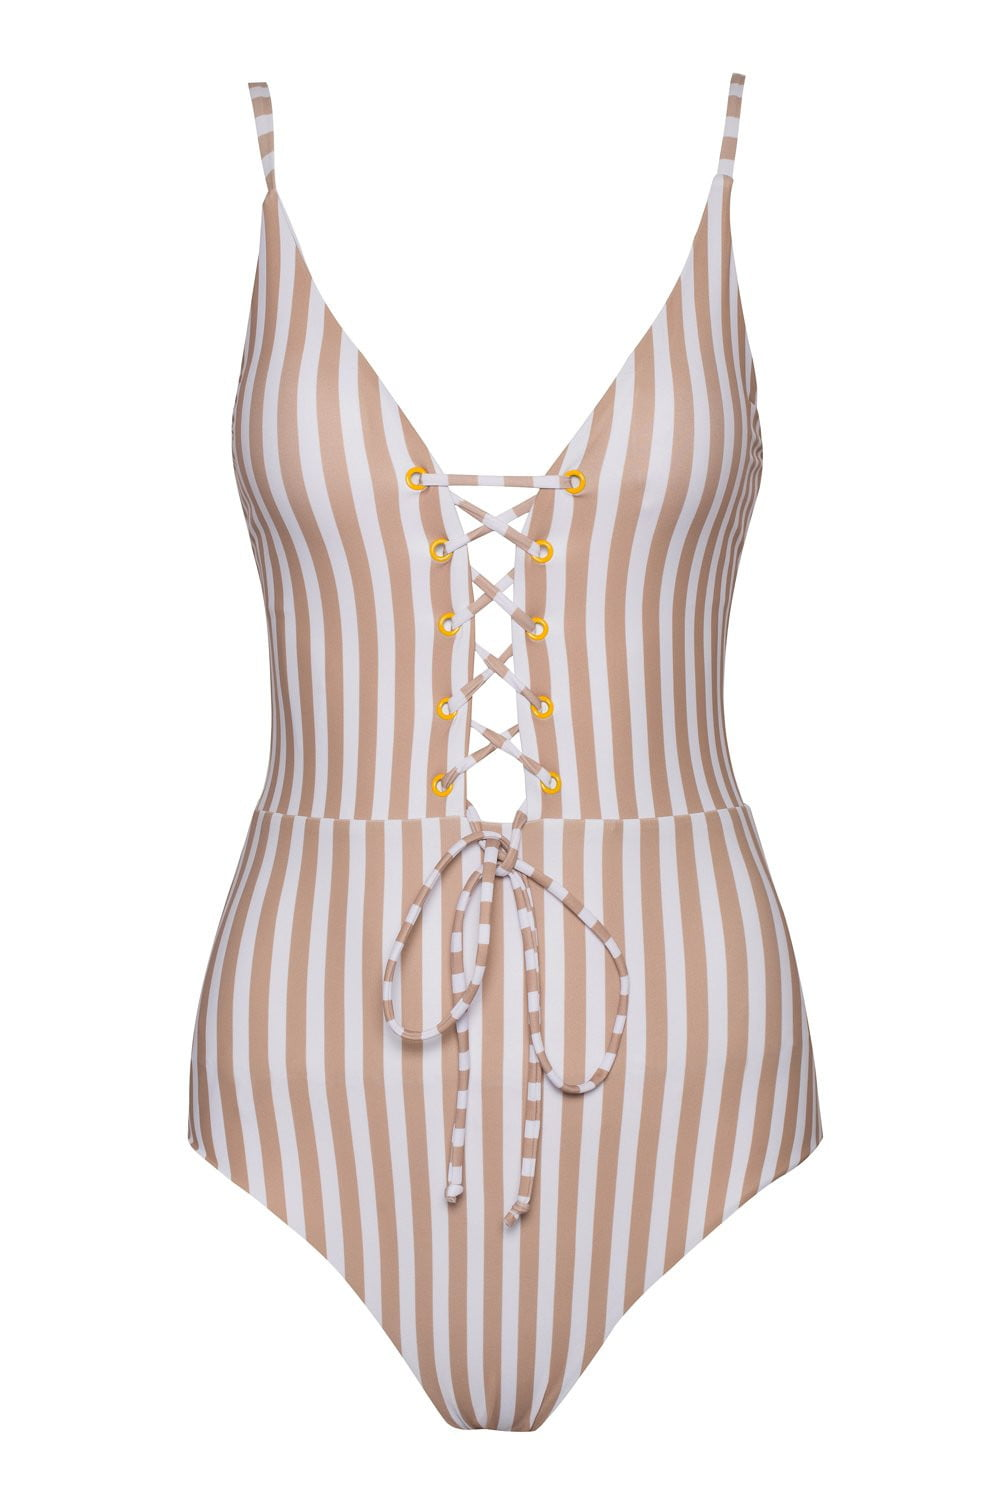 ed9b5dae3a0cc Striped Plunge Lace-Up One Piece Swimsuit